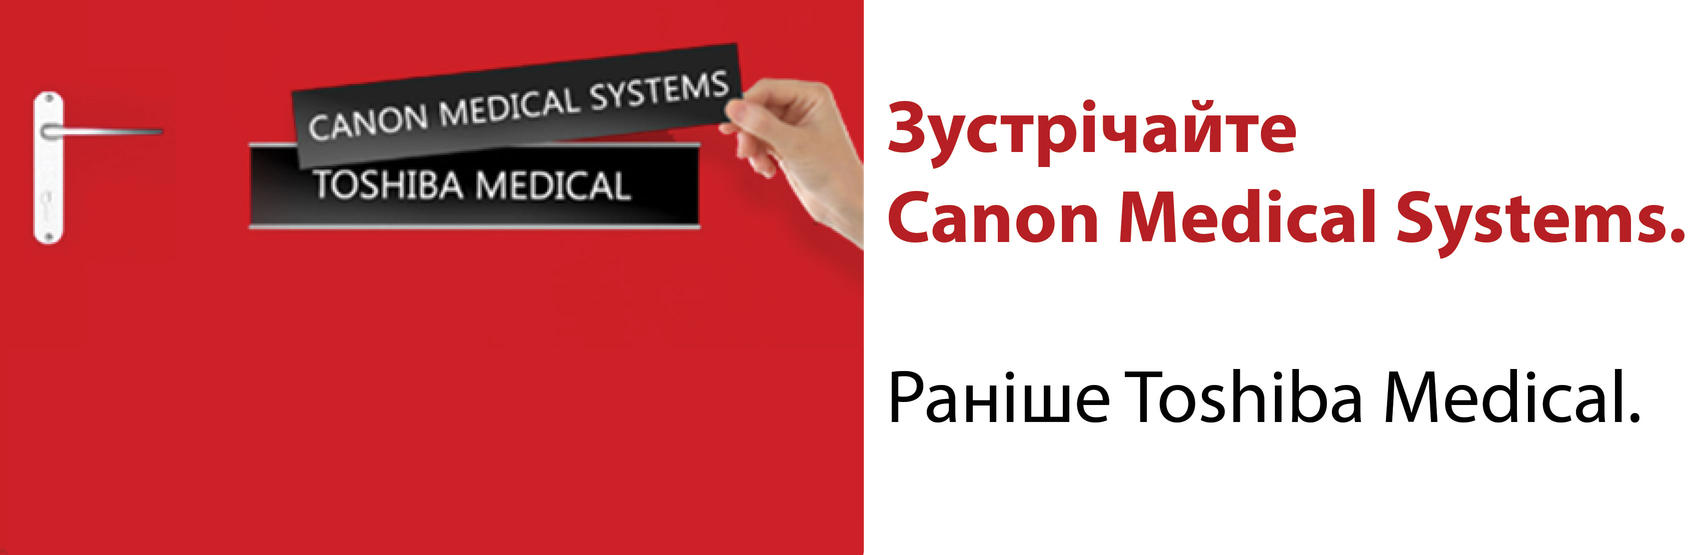 http://www.toshiba-medical.com.ua/ua/novosti-i-meropriyatiya/novini/kompanya-canon-ogoloshu-pro-zmnu-korporativno-nazvi-korporac-toshiba-medical-systems-corporation-na-canon-medical-systems-corporation/